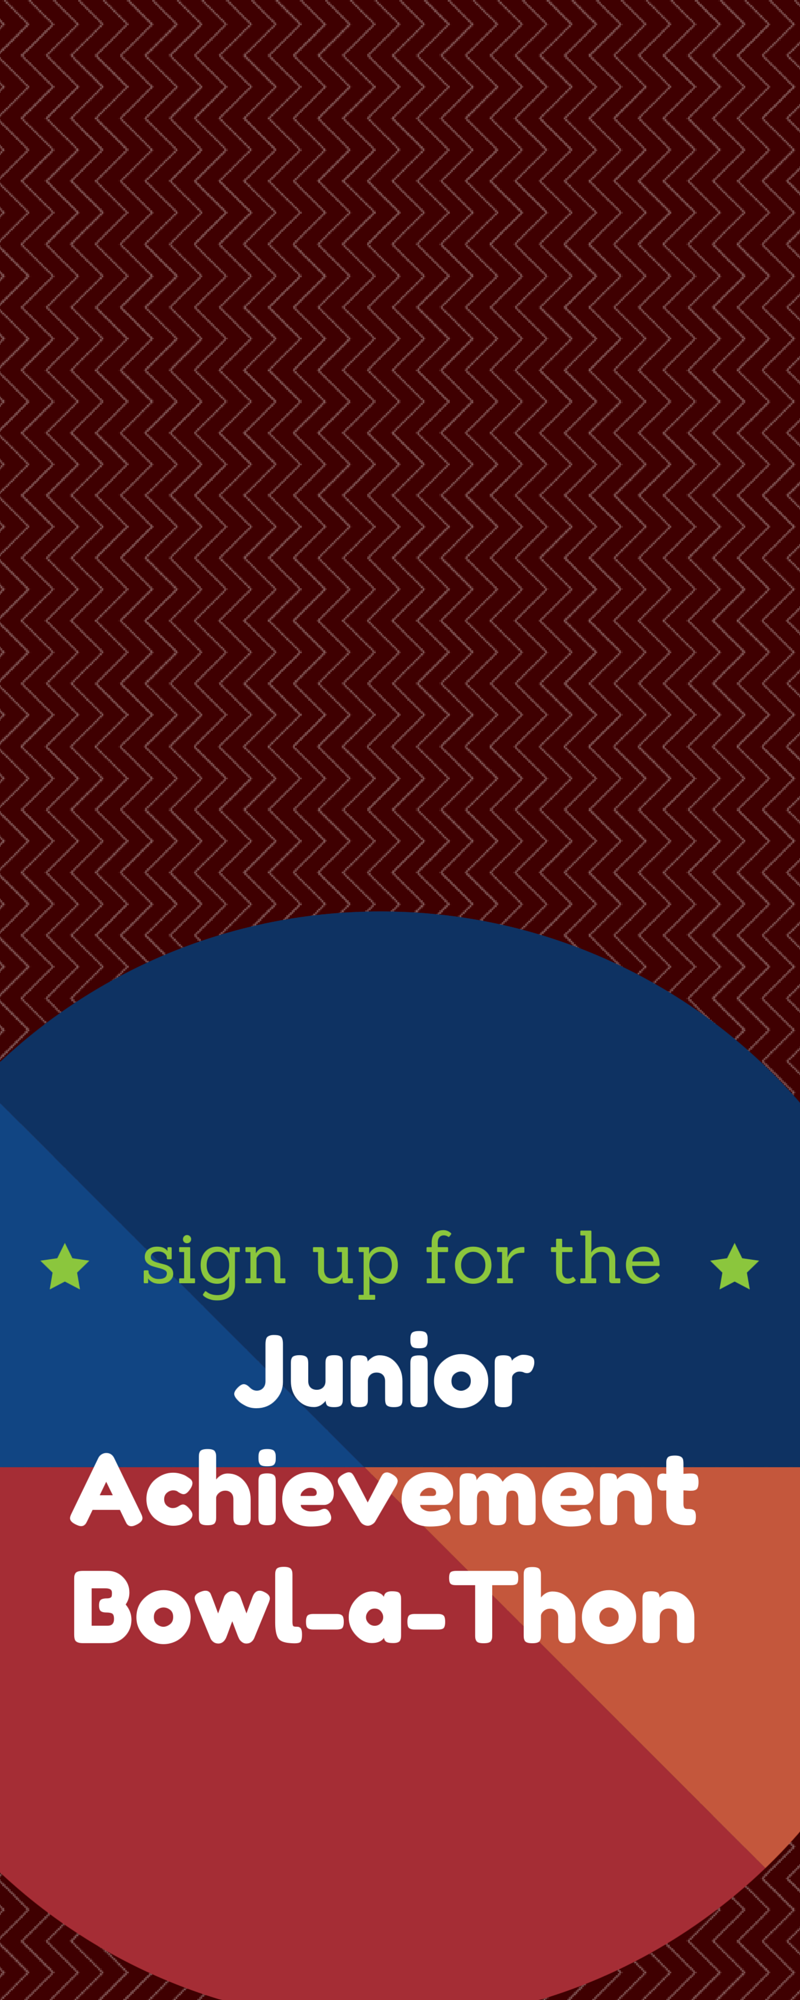 The Junior Achievement® Bowl-a-Thon is a one-of-a-kind annual team-building event for your company, giving employees the opportunity to work together, strategize, bowl, and raise money for JA.